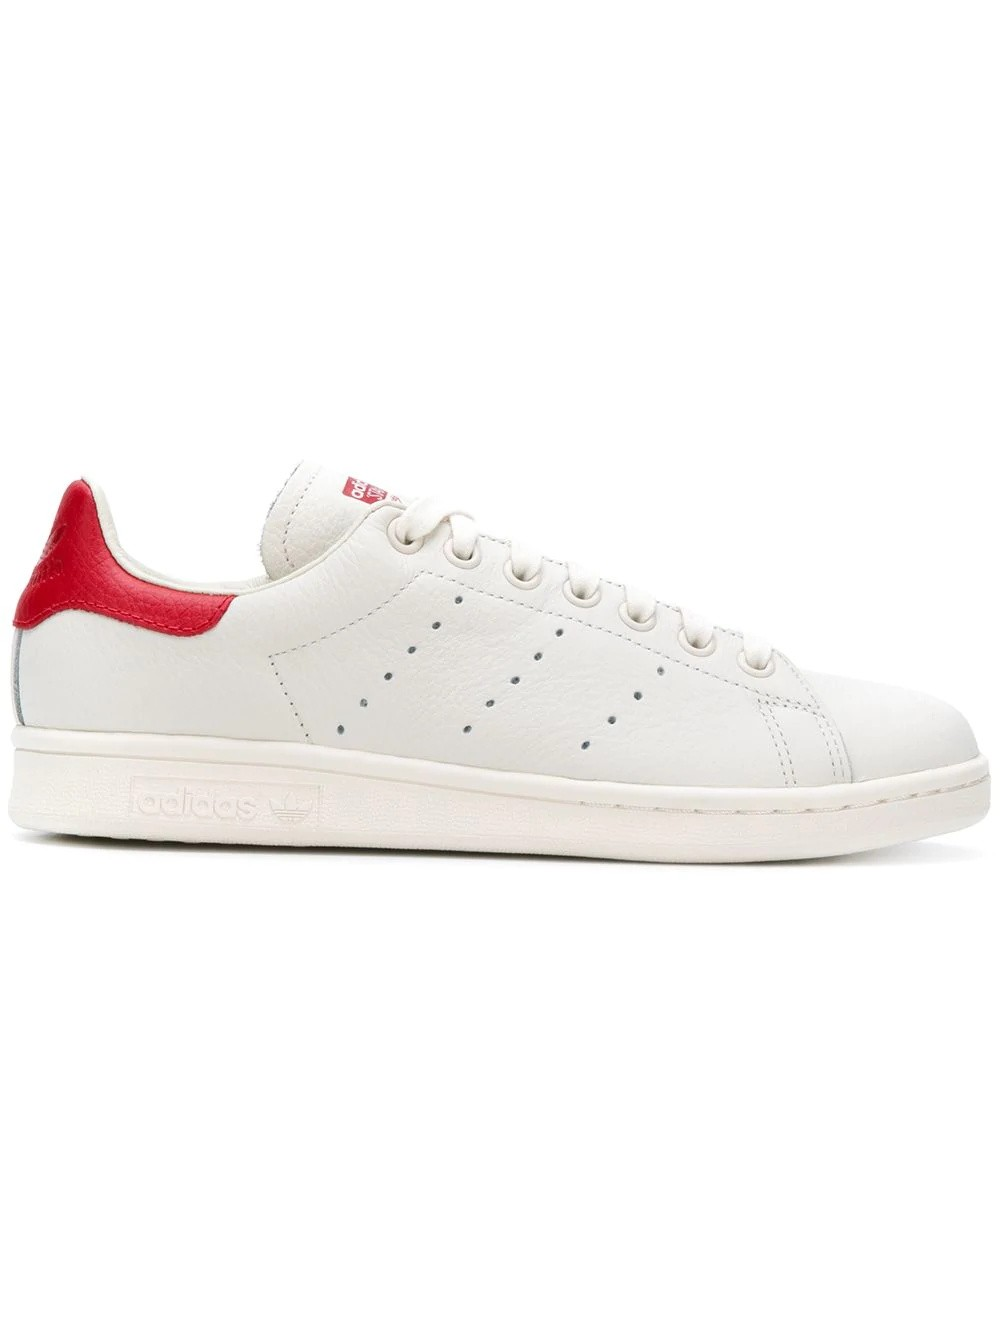 Adidas Stan Smith (Blancas/Rojas) B37898